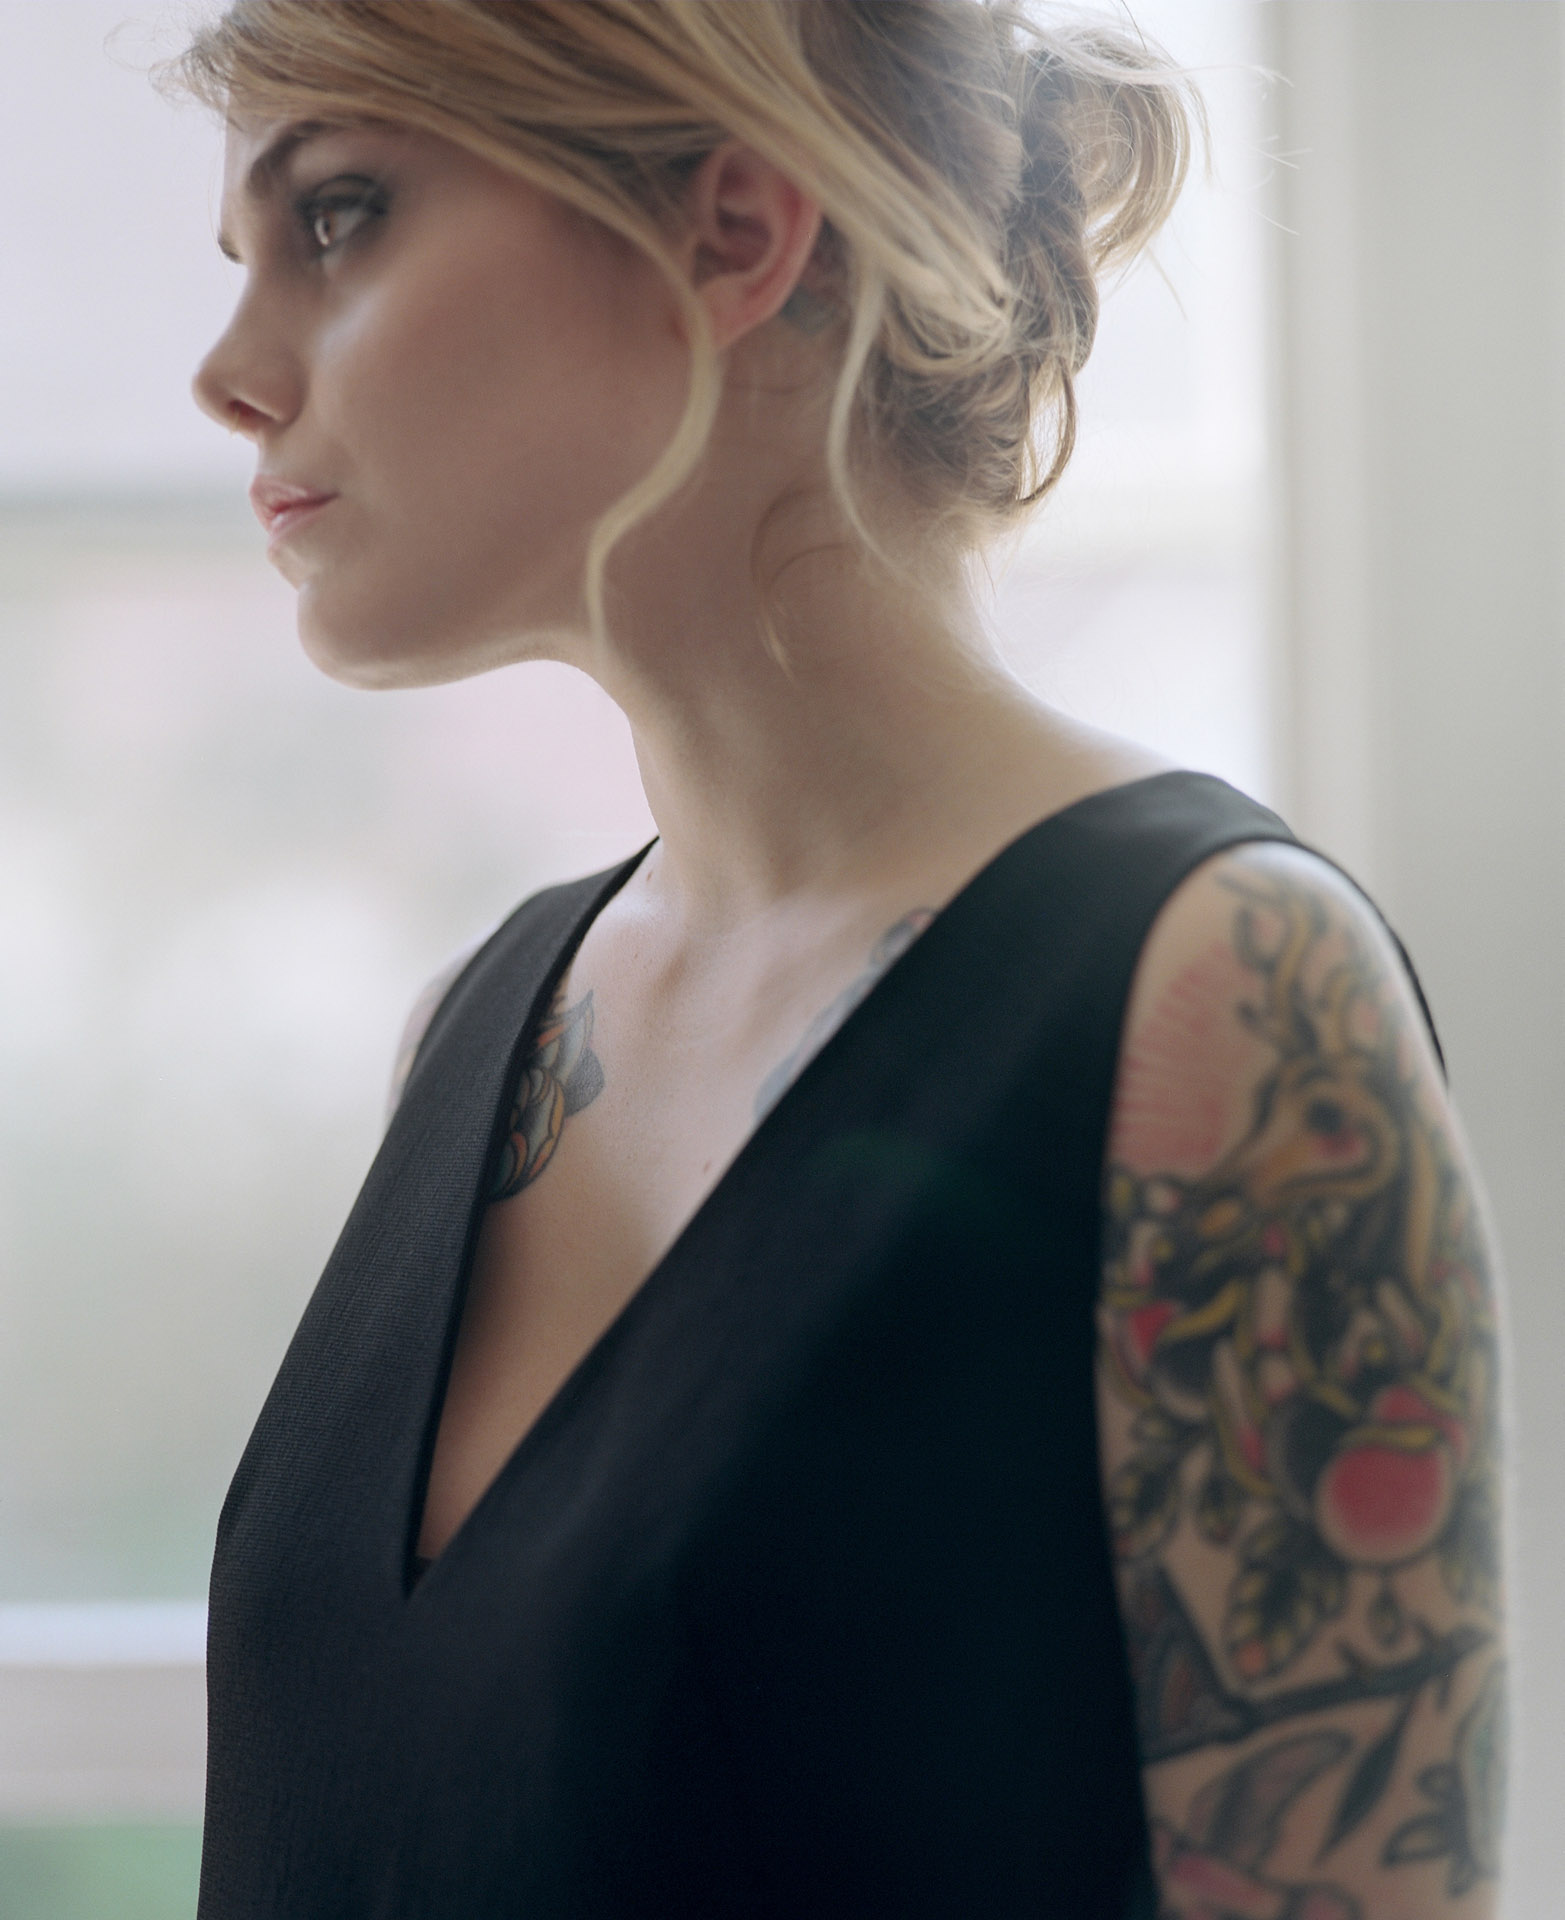 singer Coeur de Pirate by Maxyme G Delisle for Loulou Magazine